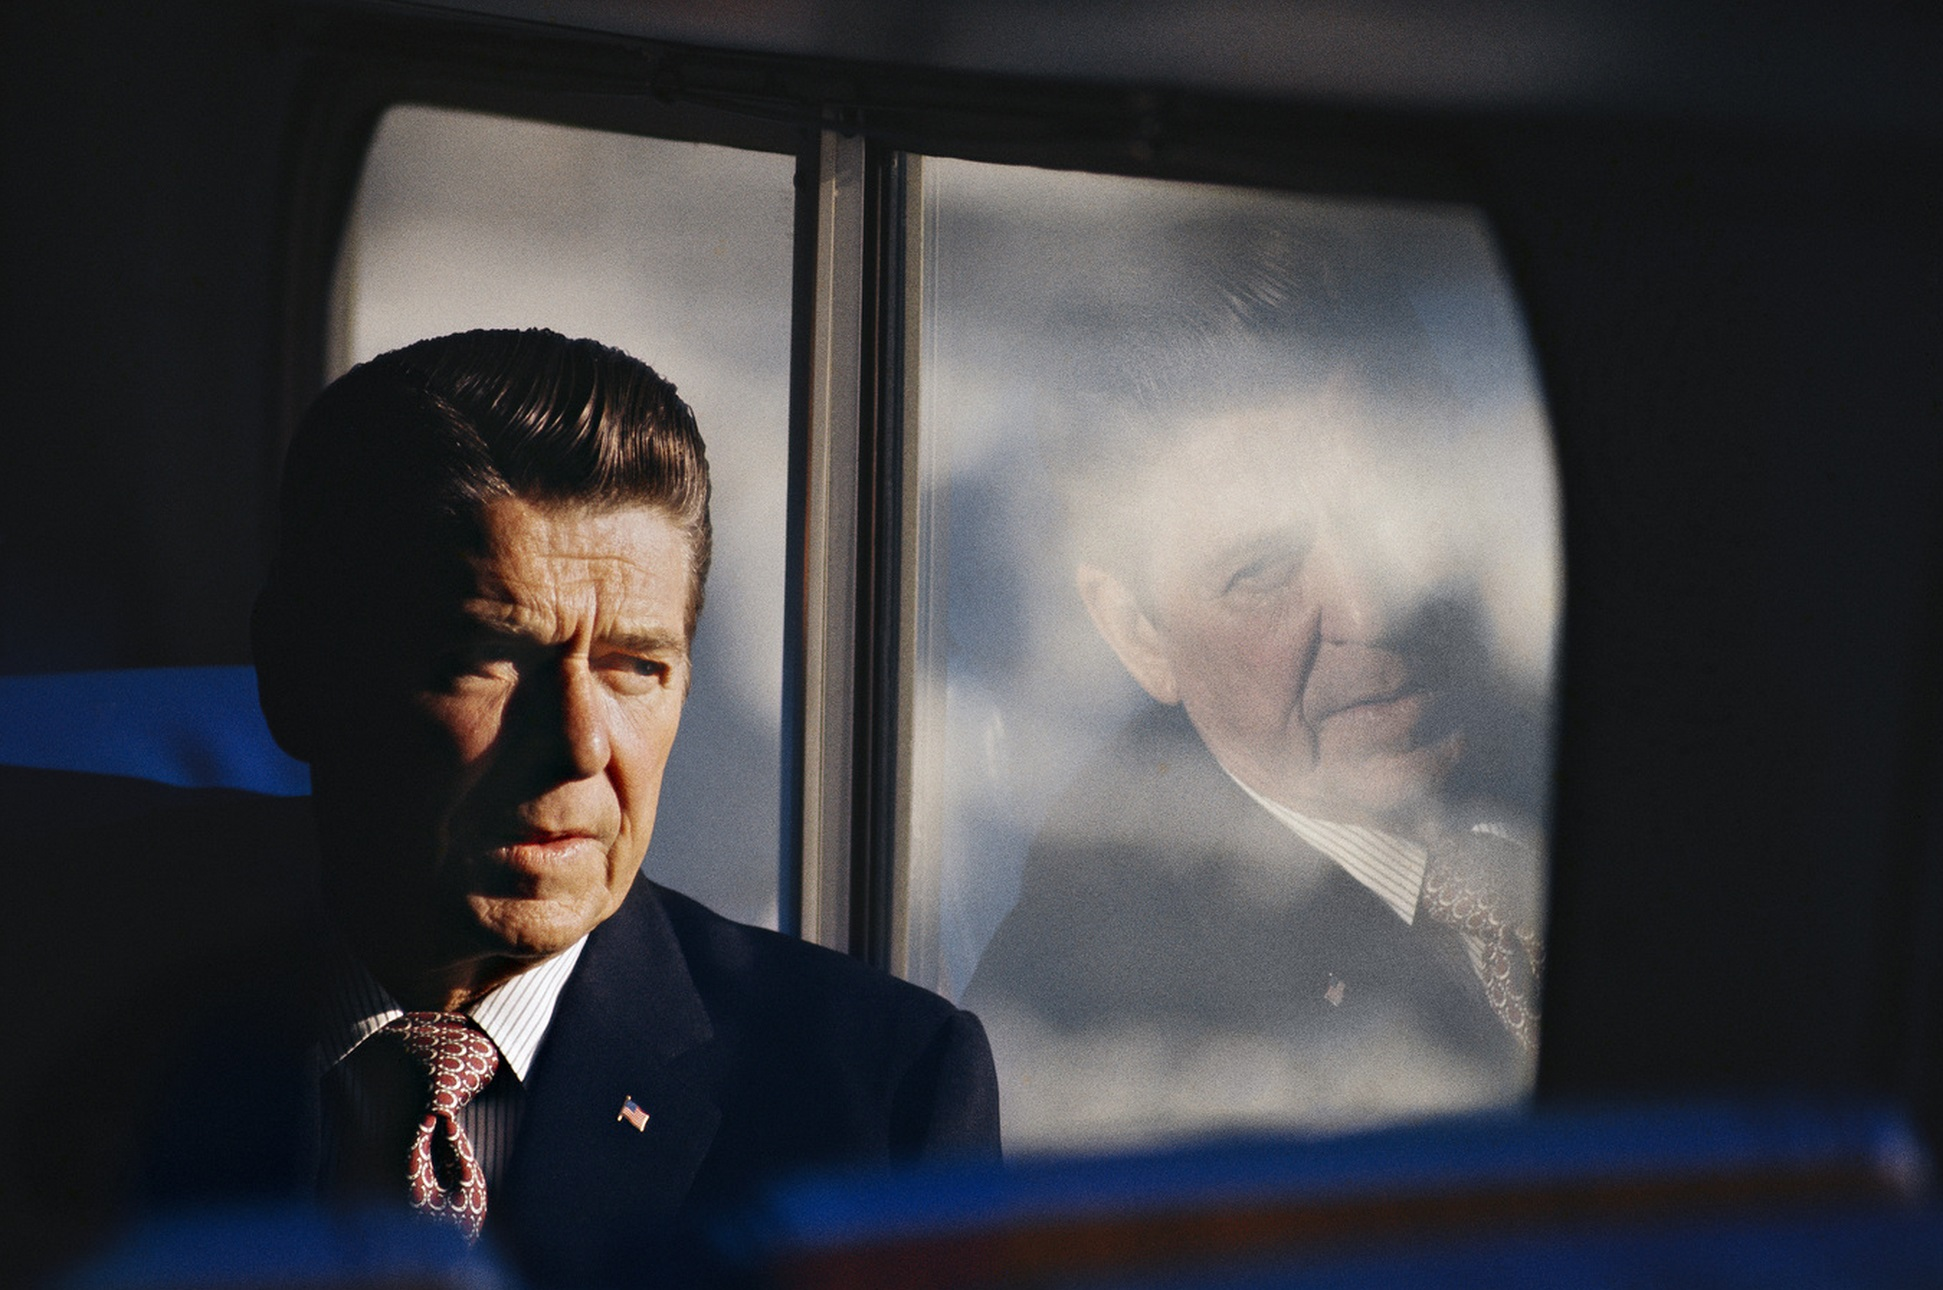 Ronald Reagan on the campaign bus in New Hampshire,February 1976. © 2015 David Burnett/Contact Press Images